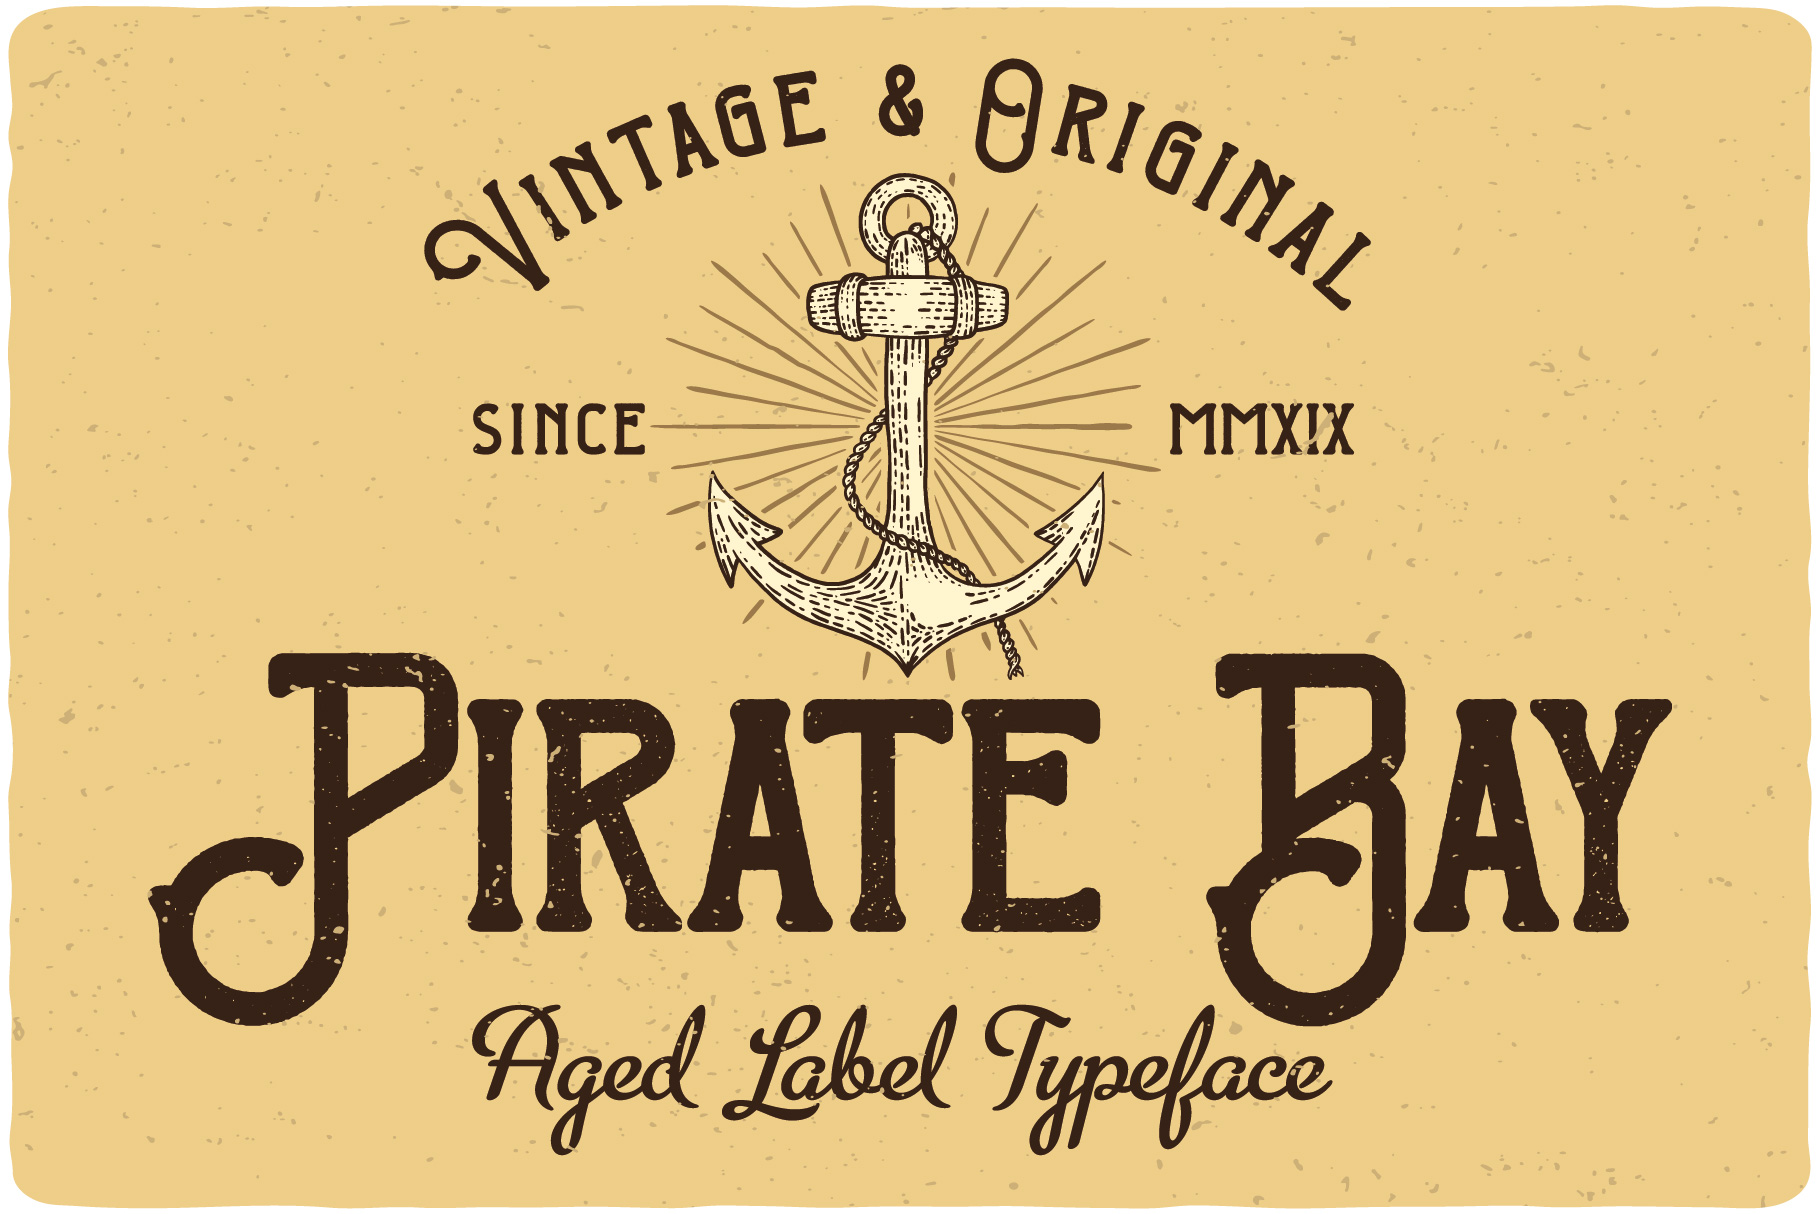 Pirate Bay Typeface example image 3